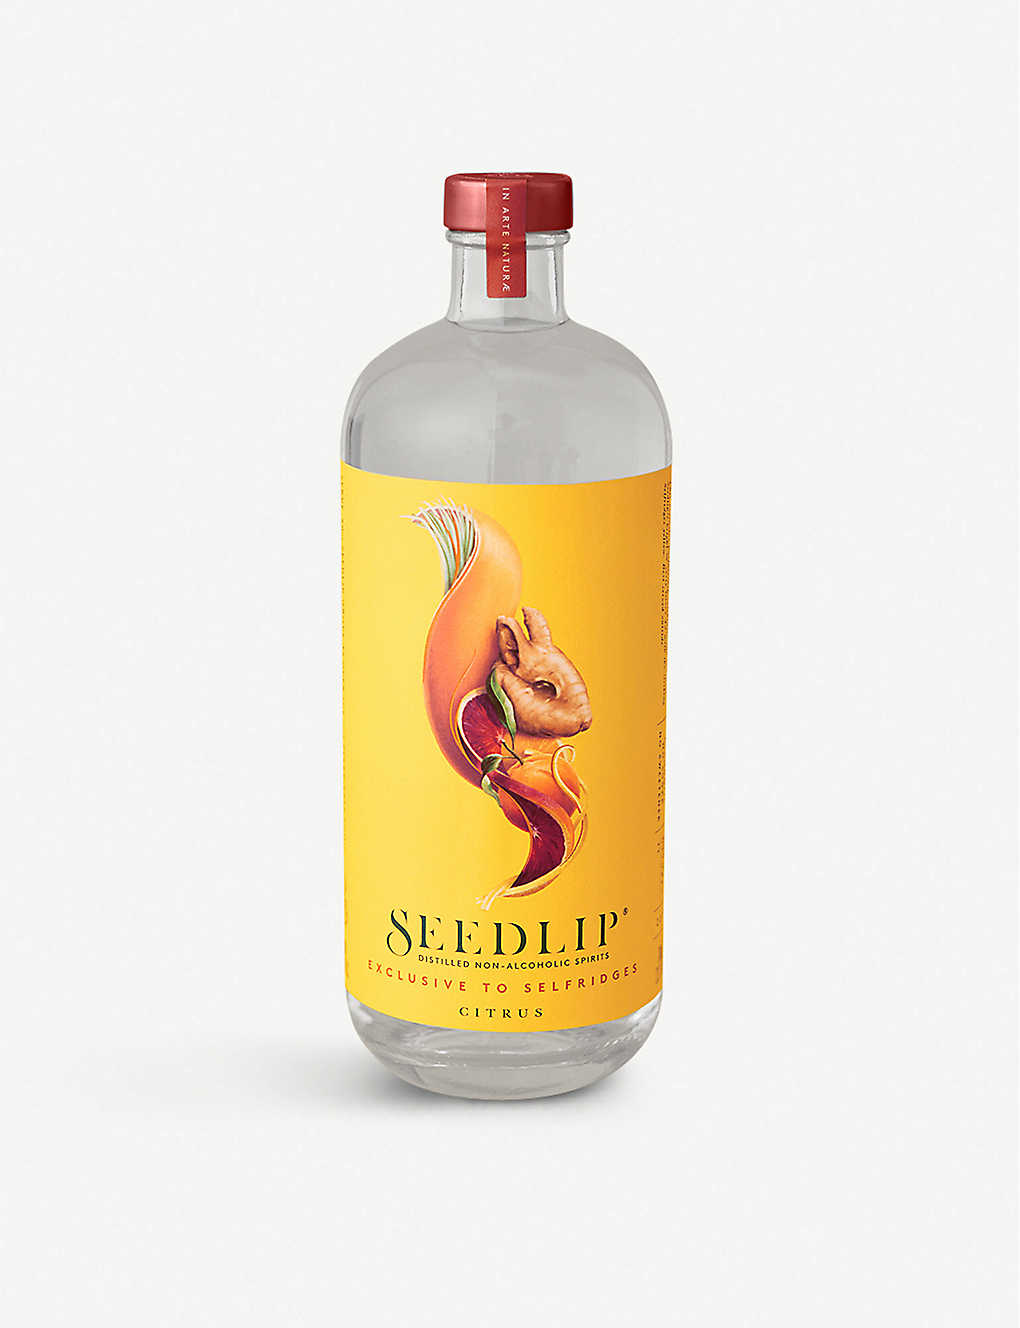 SEEDLIP: Limited Edition Citrus non-alcoholic spirit 700ml